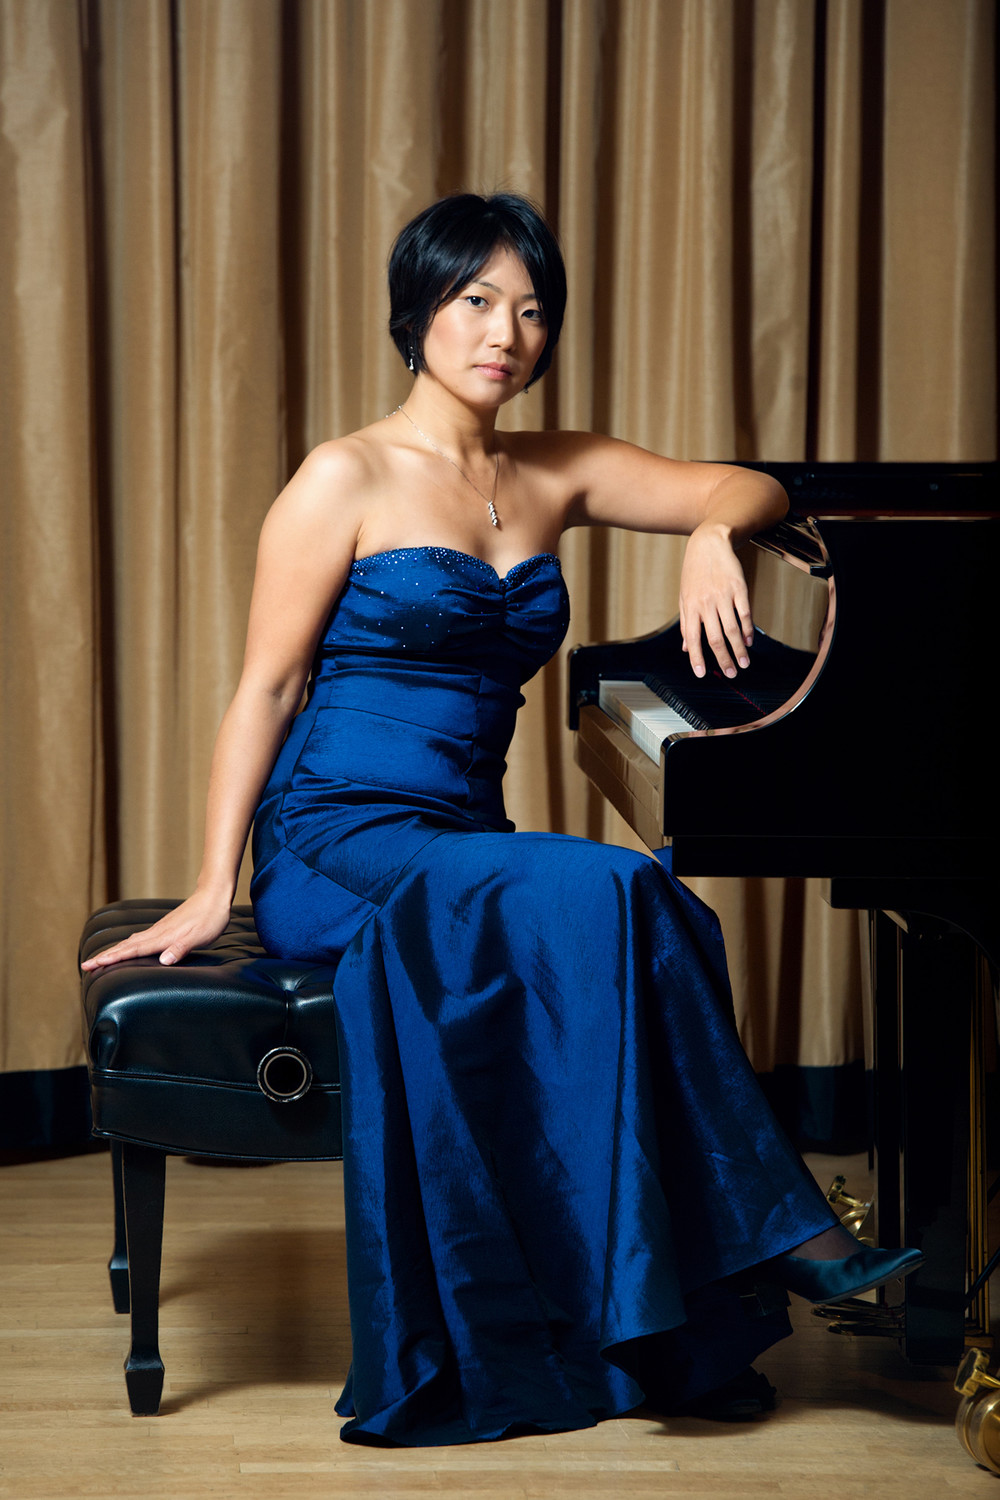 Misuzu Tanaka performs in the Arts in the Village Concert Series on November 11.